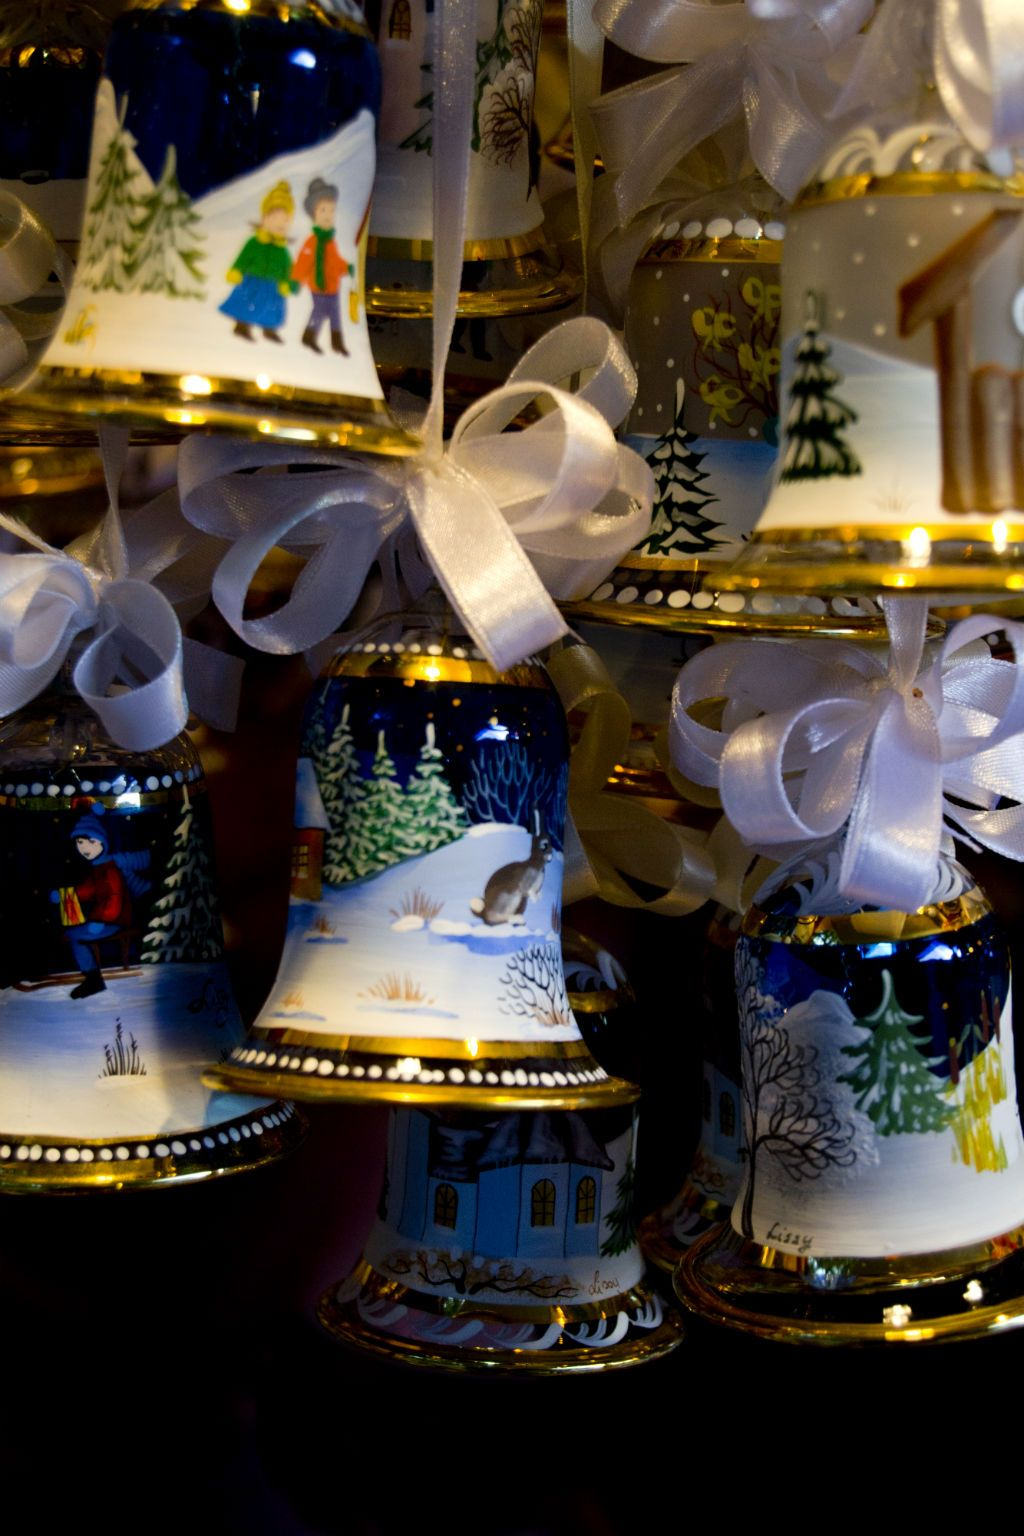 Weihnachtsschmuck (With images) | Christmas decorations ...